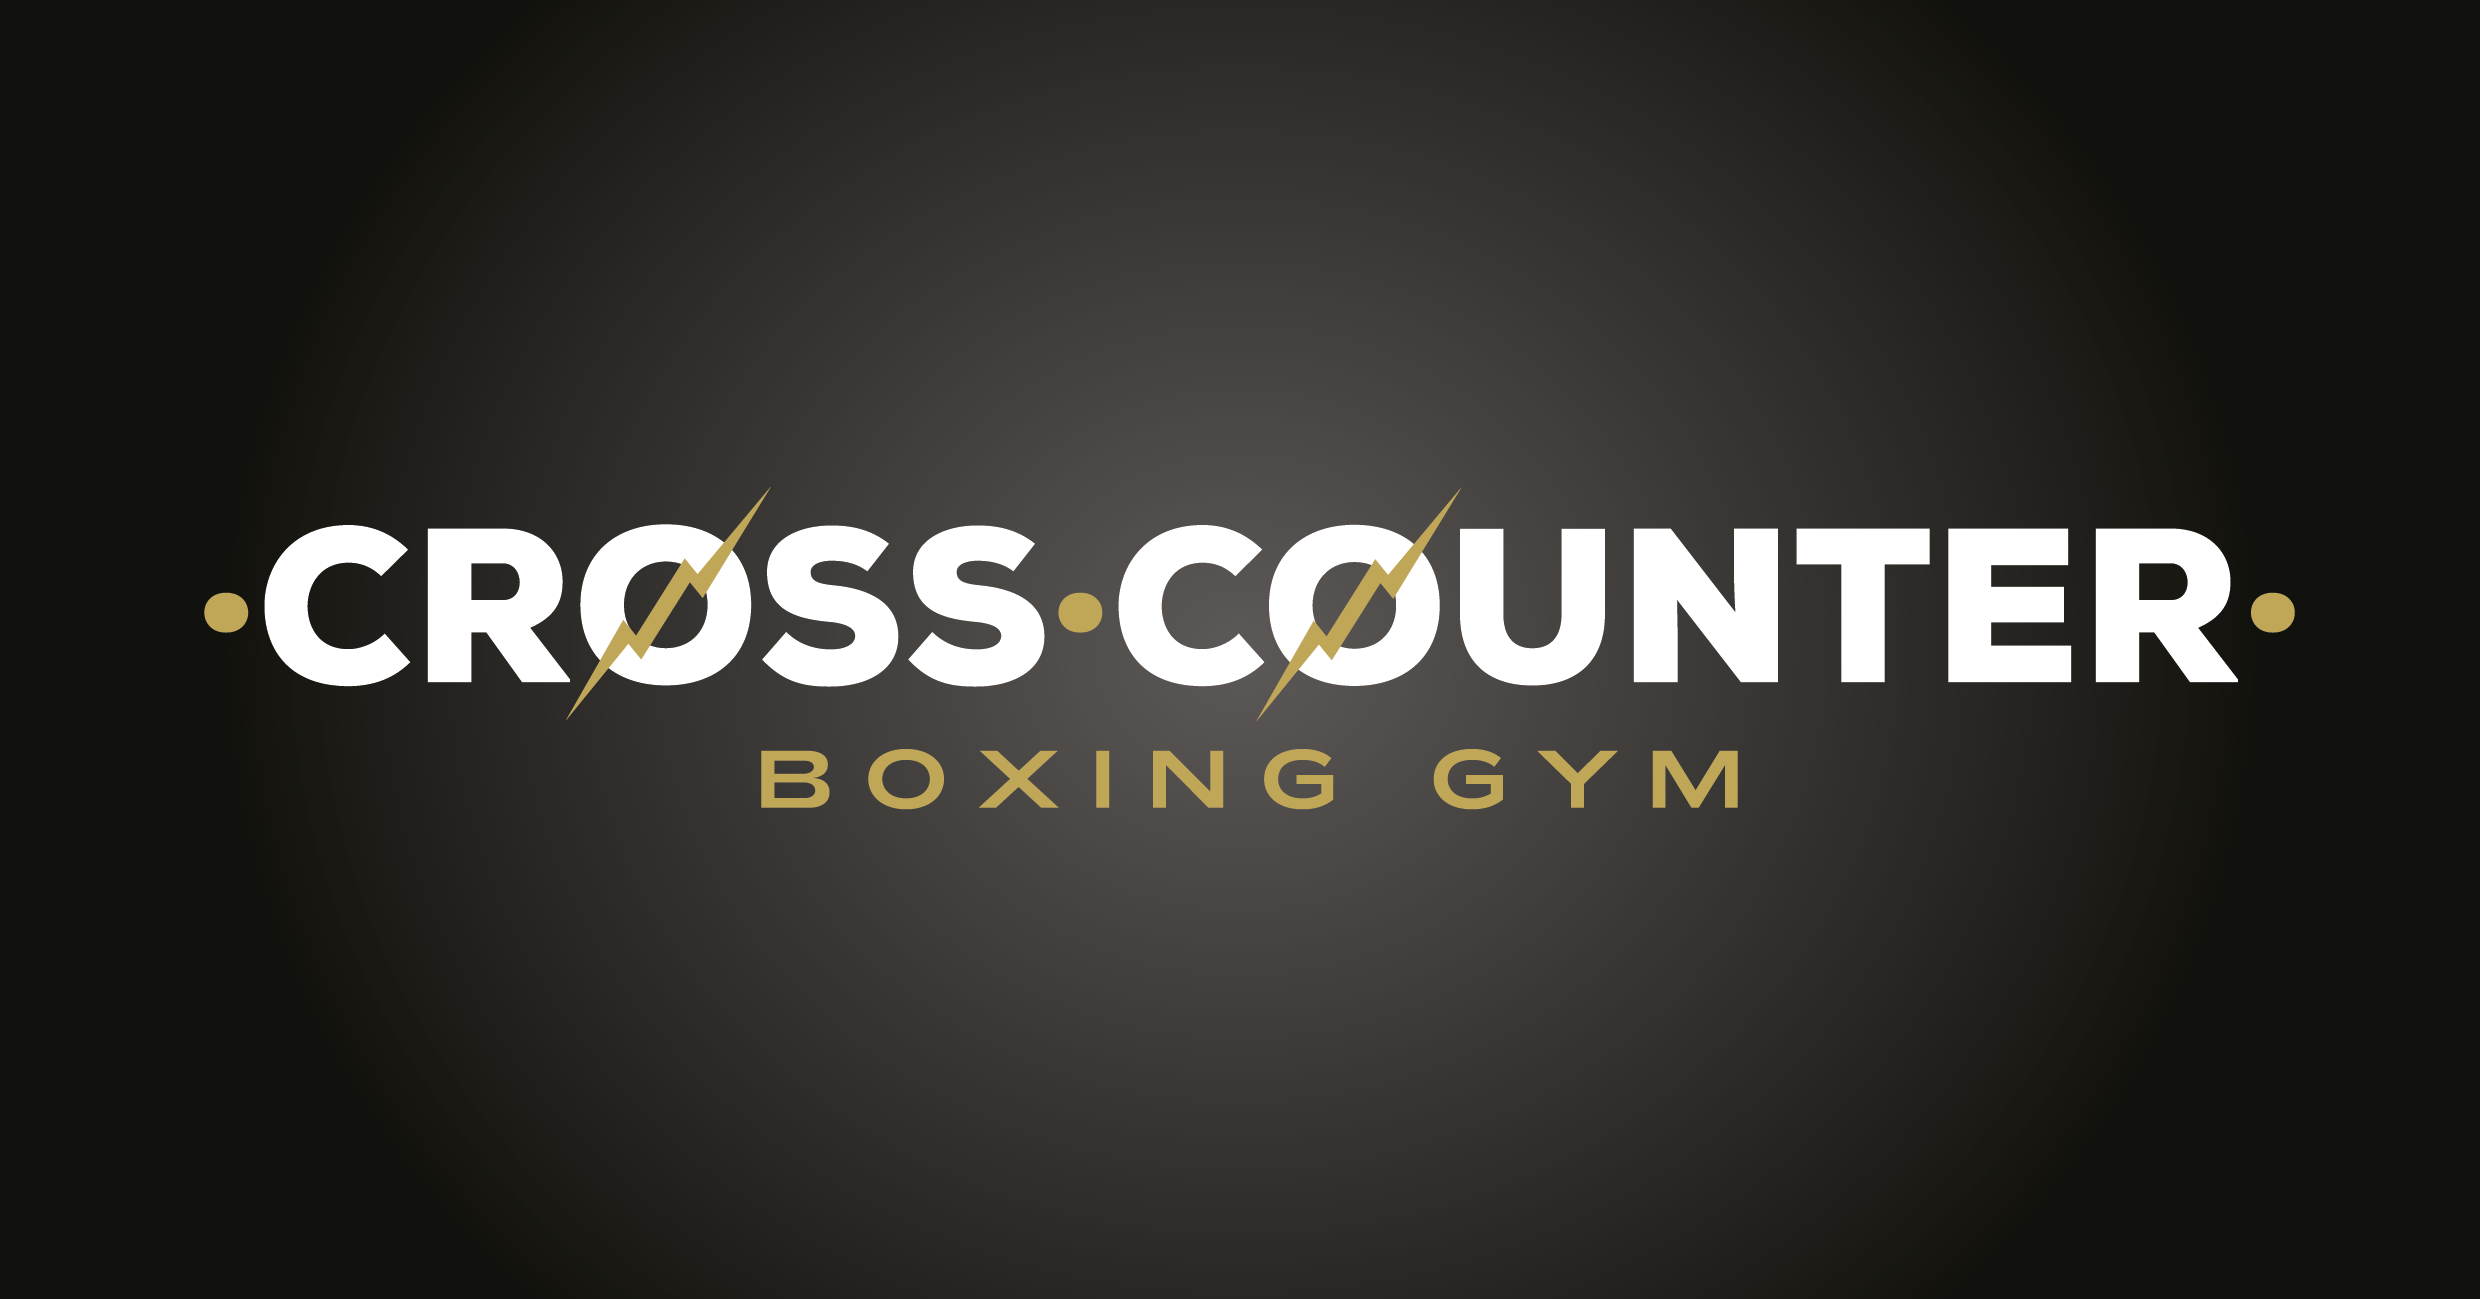 LOGO CROSS COUNTER